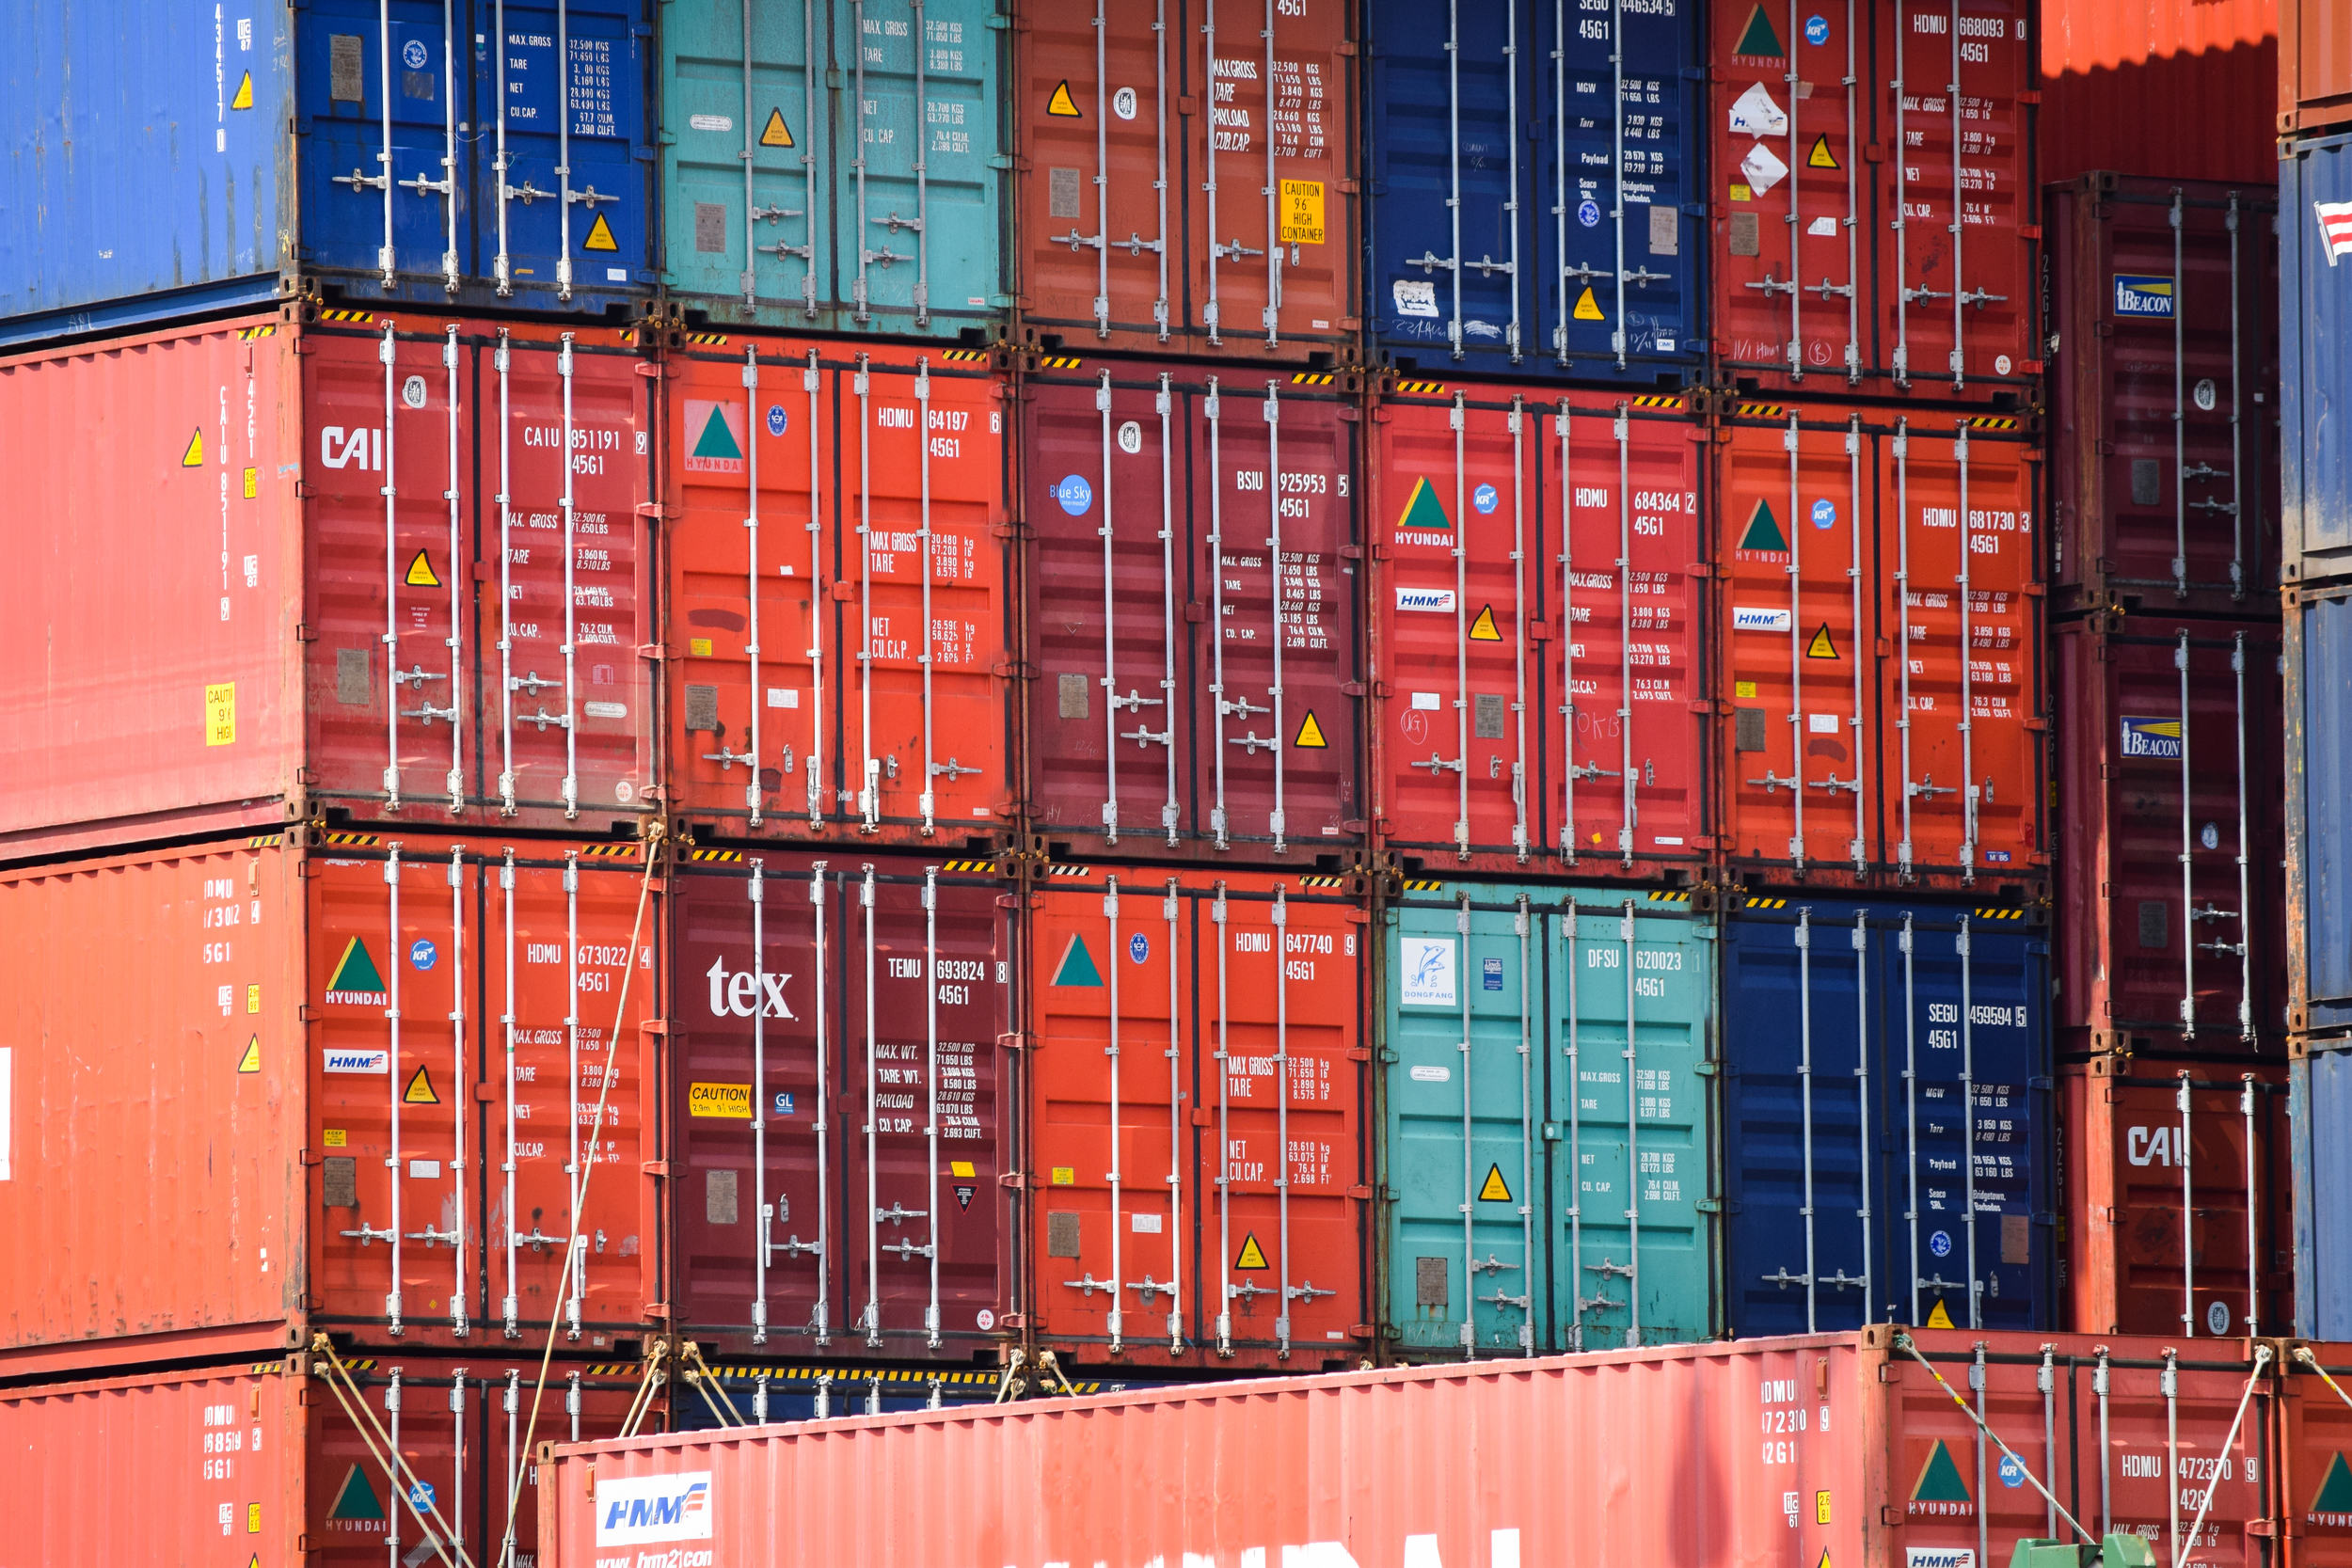 Shipping containers on a cargo vessel